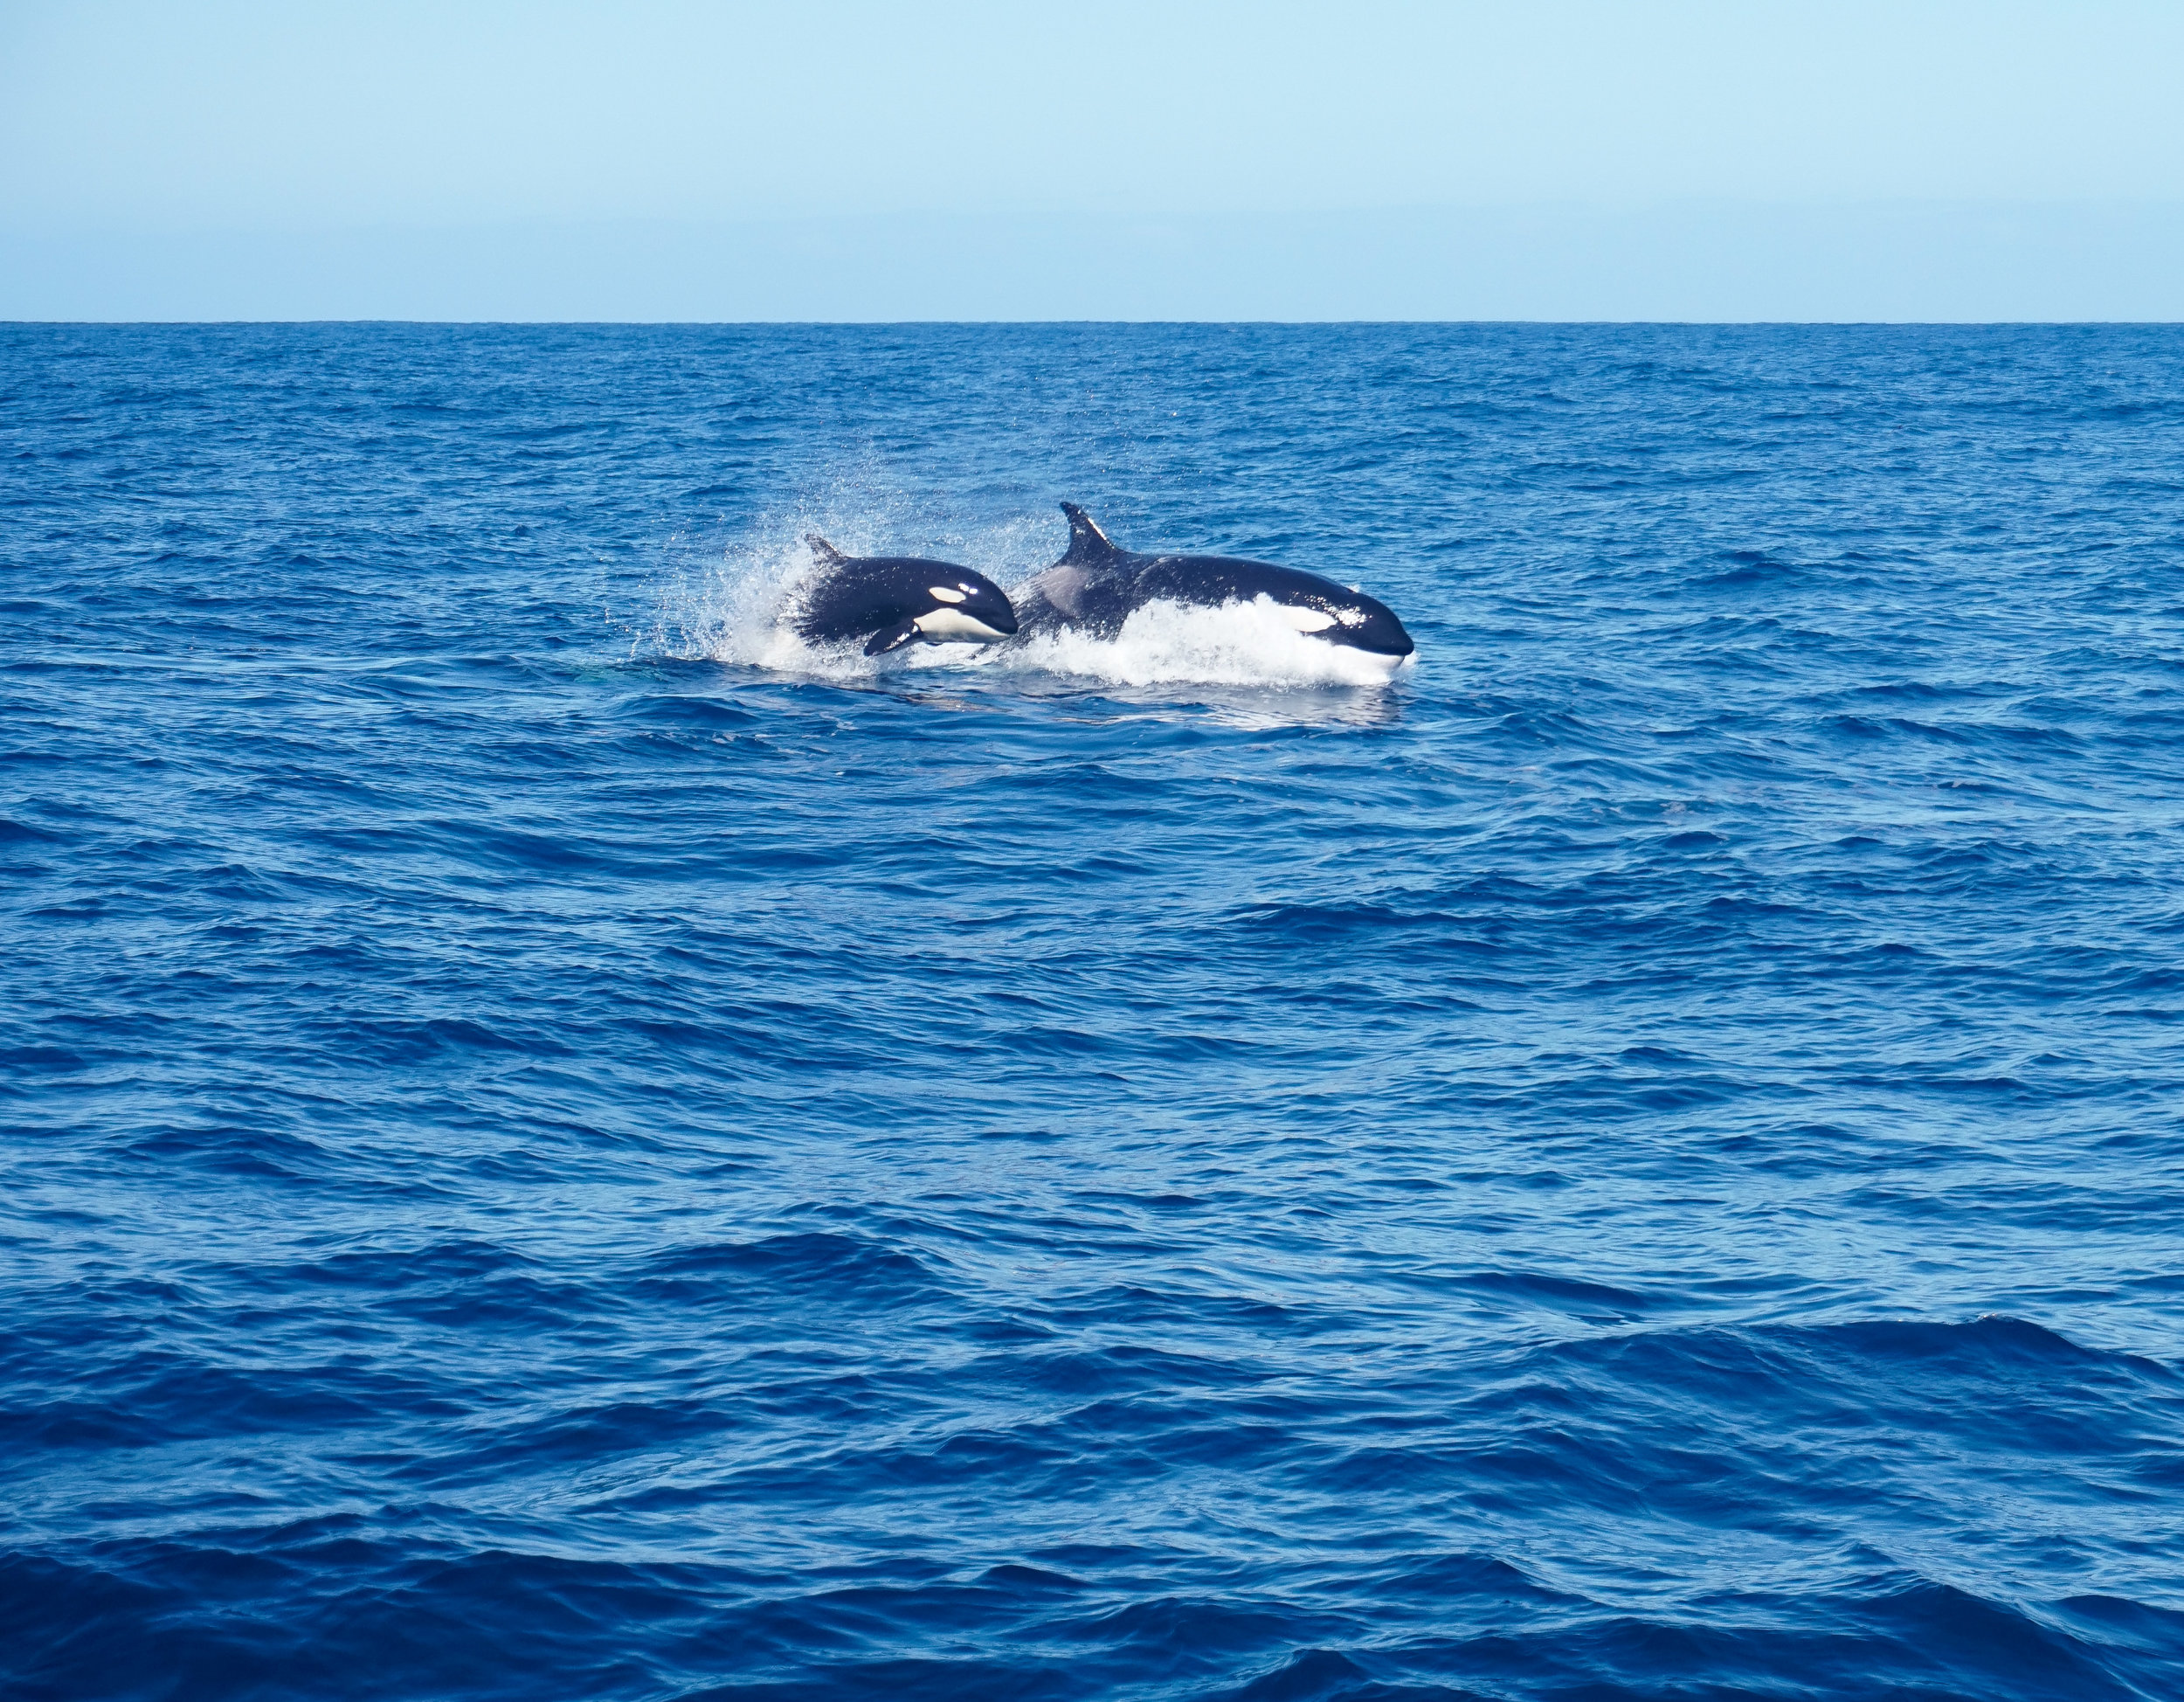 curio.trips.australia.western.whale.watching.mother.calf.landscape-2.jpg